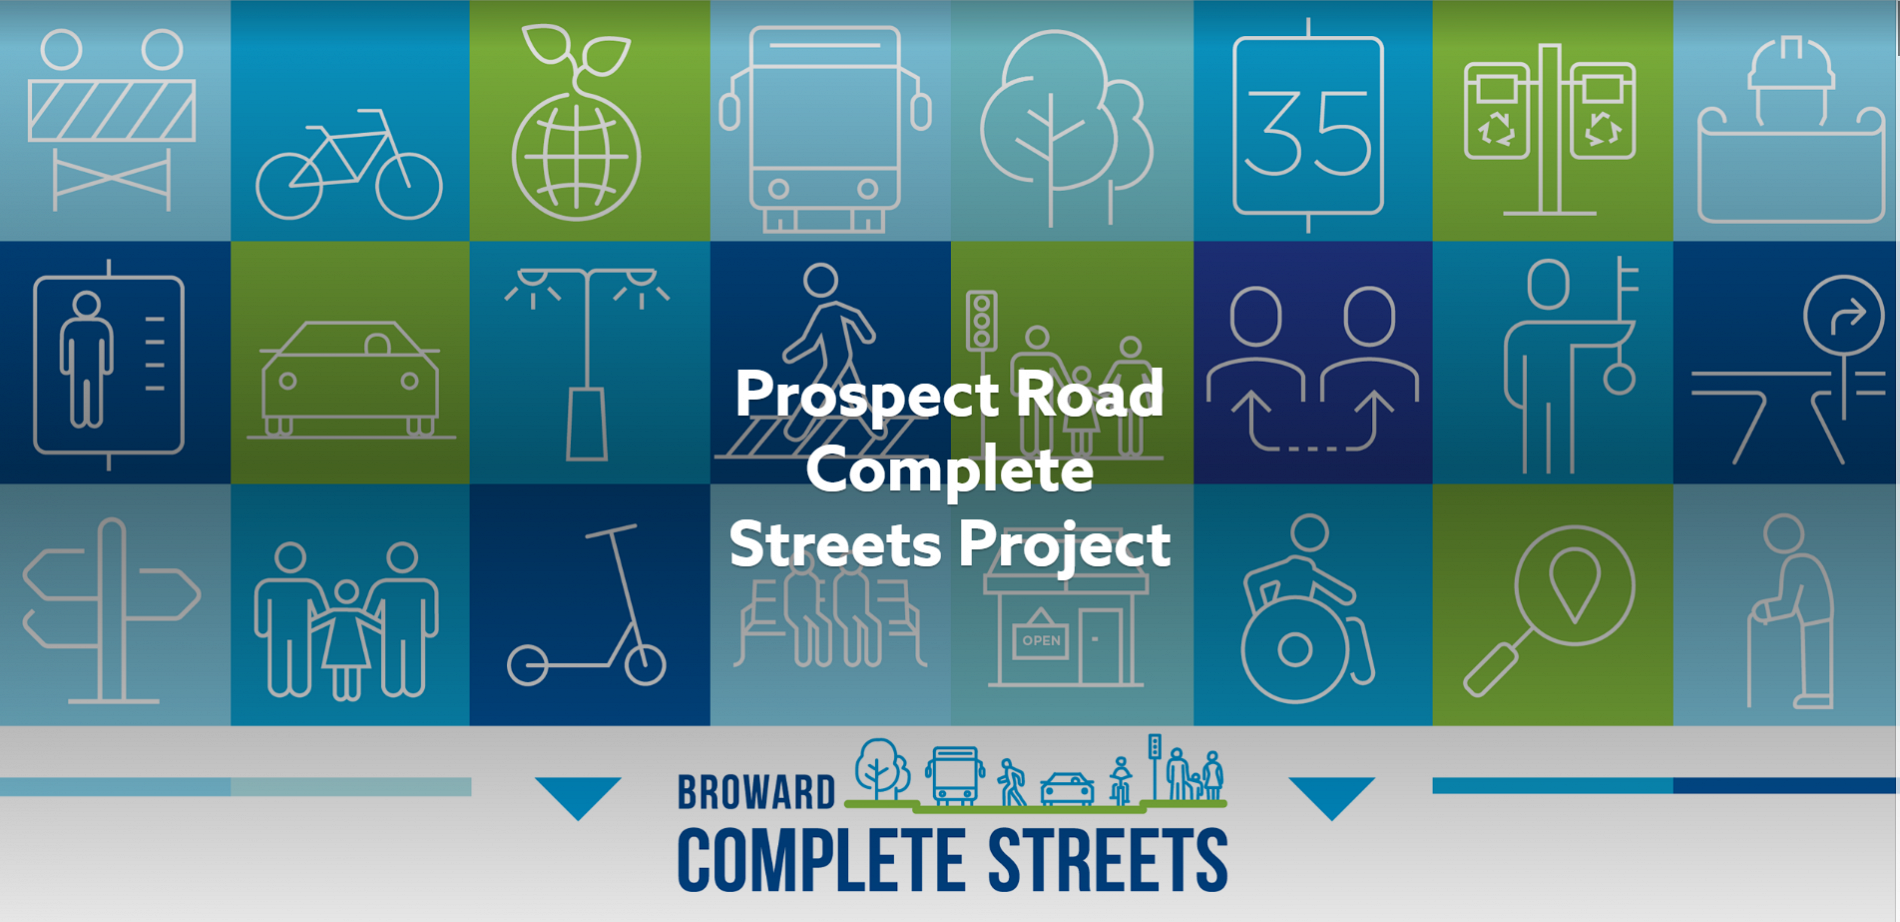 Prospect Road Complete Streets Project